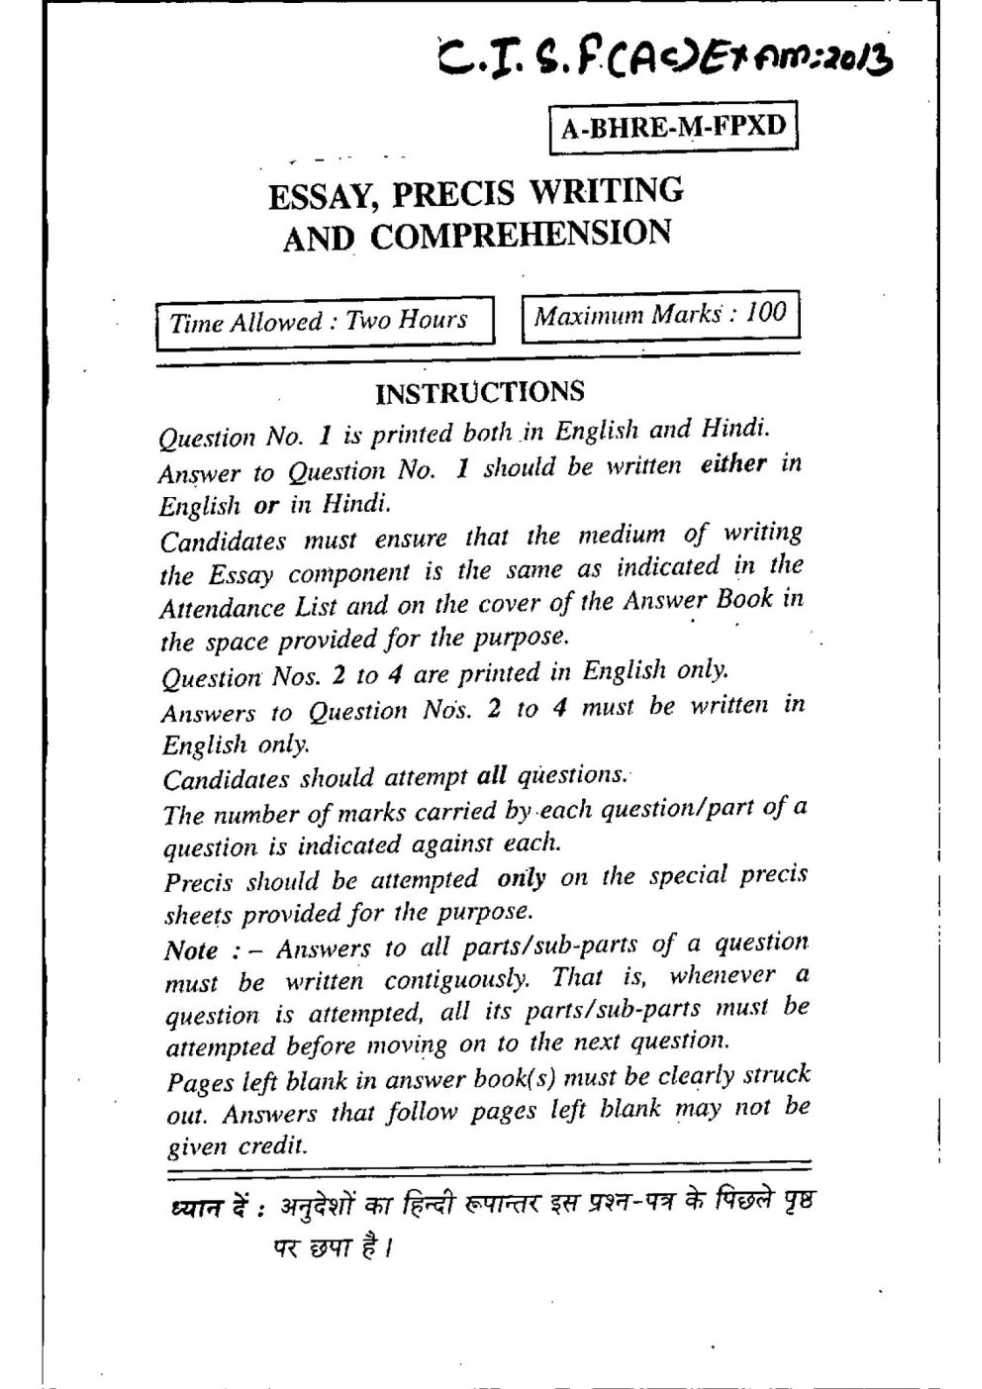 023 Music Essay Upsc Cisf Ltd Departmental Competitive Exam Precis Writing And Compreh Best Contest Introduction 2 Questions Full